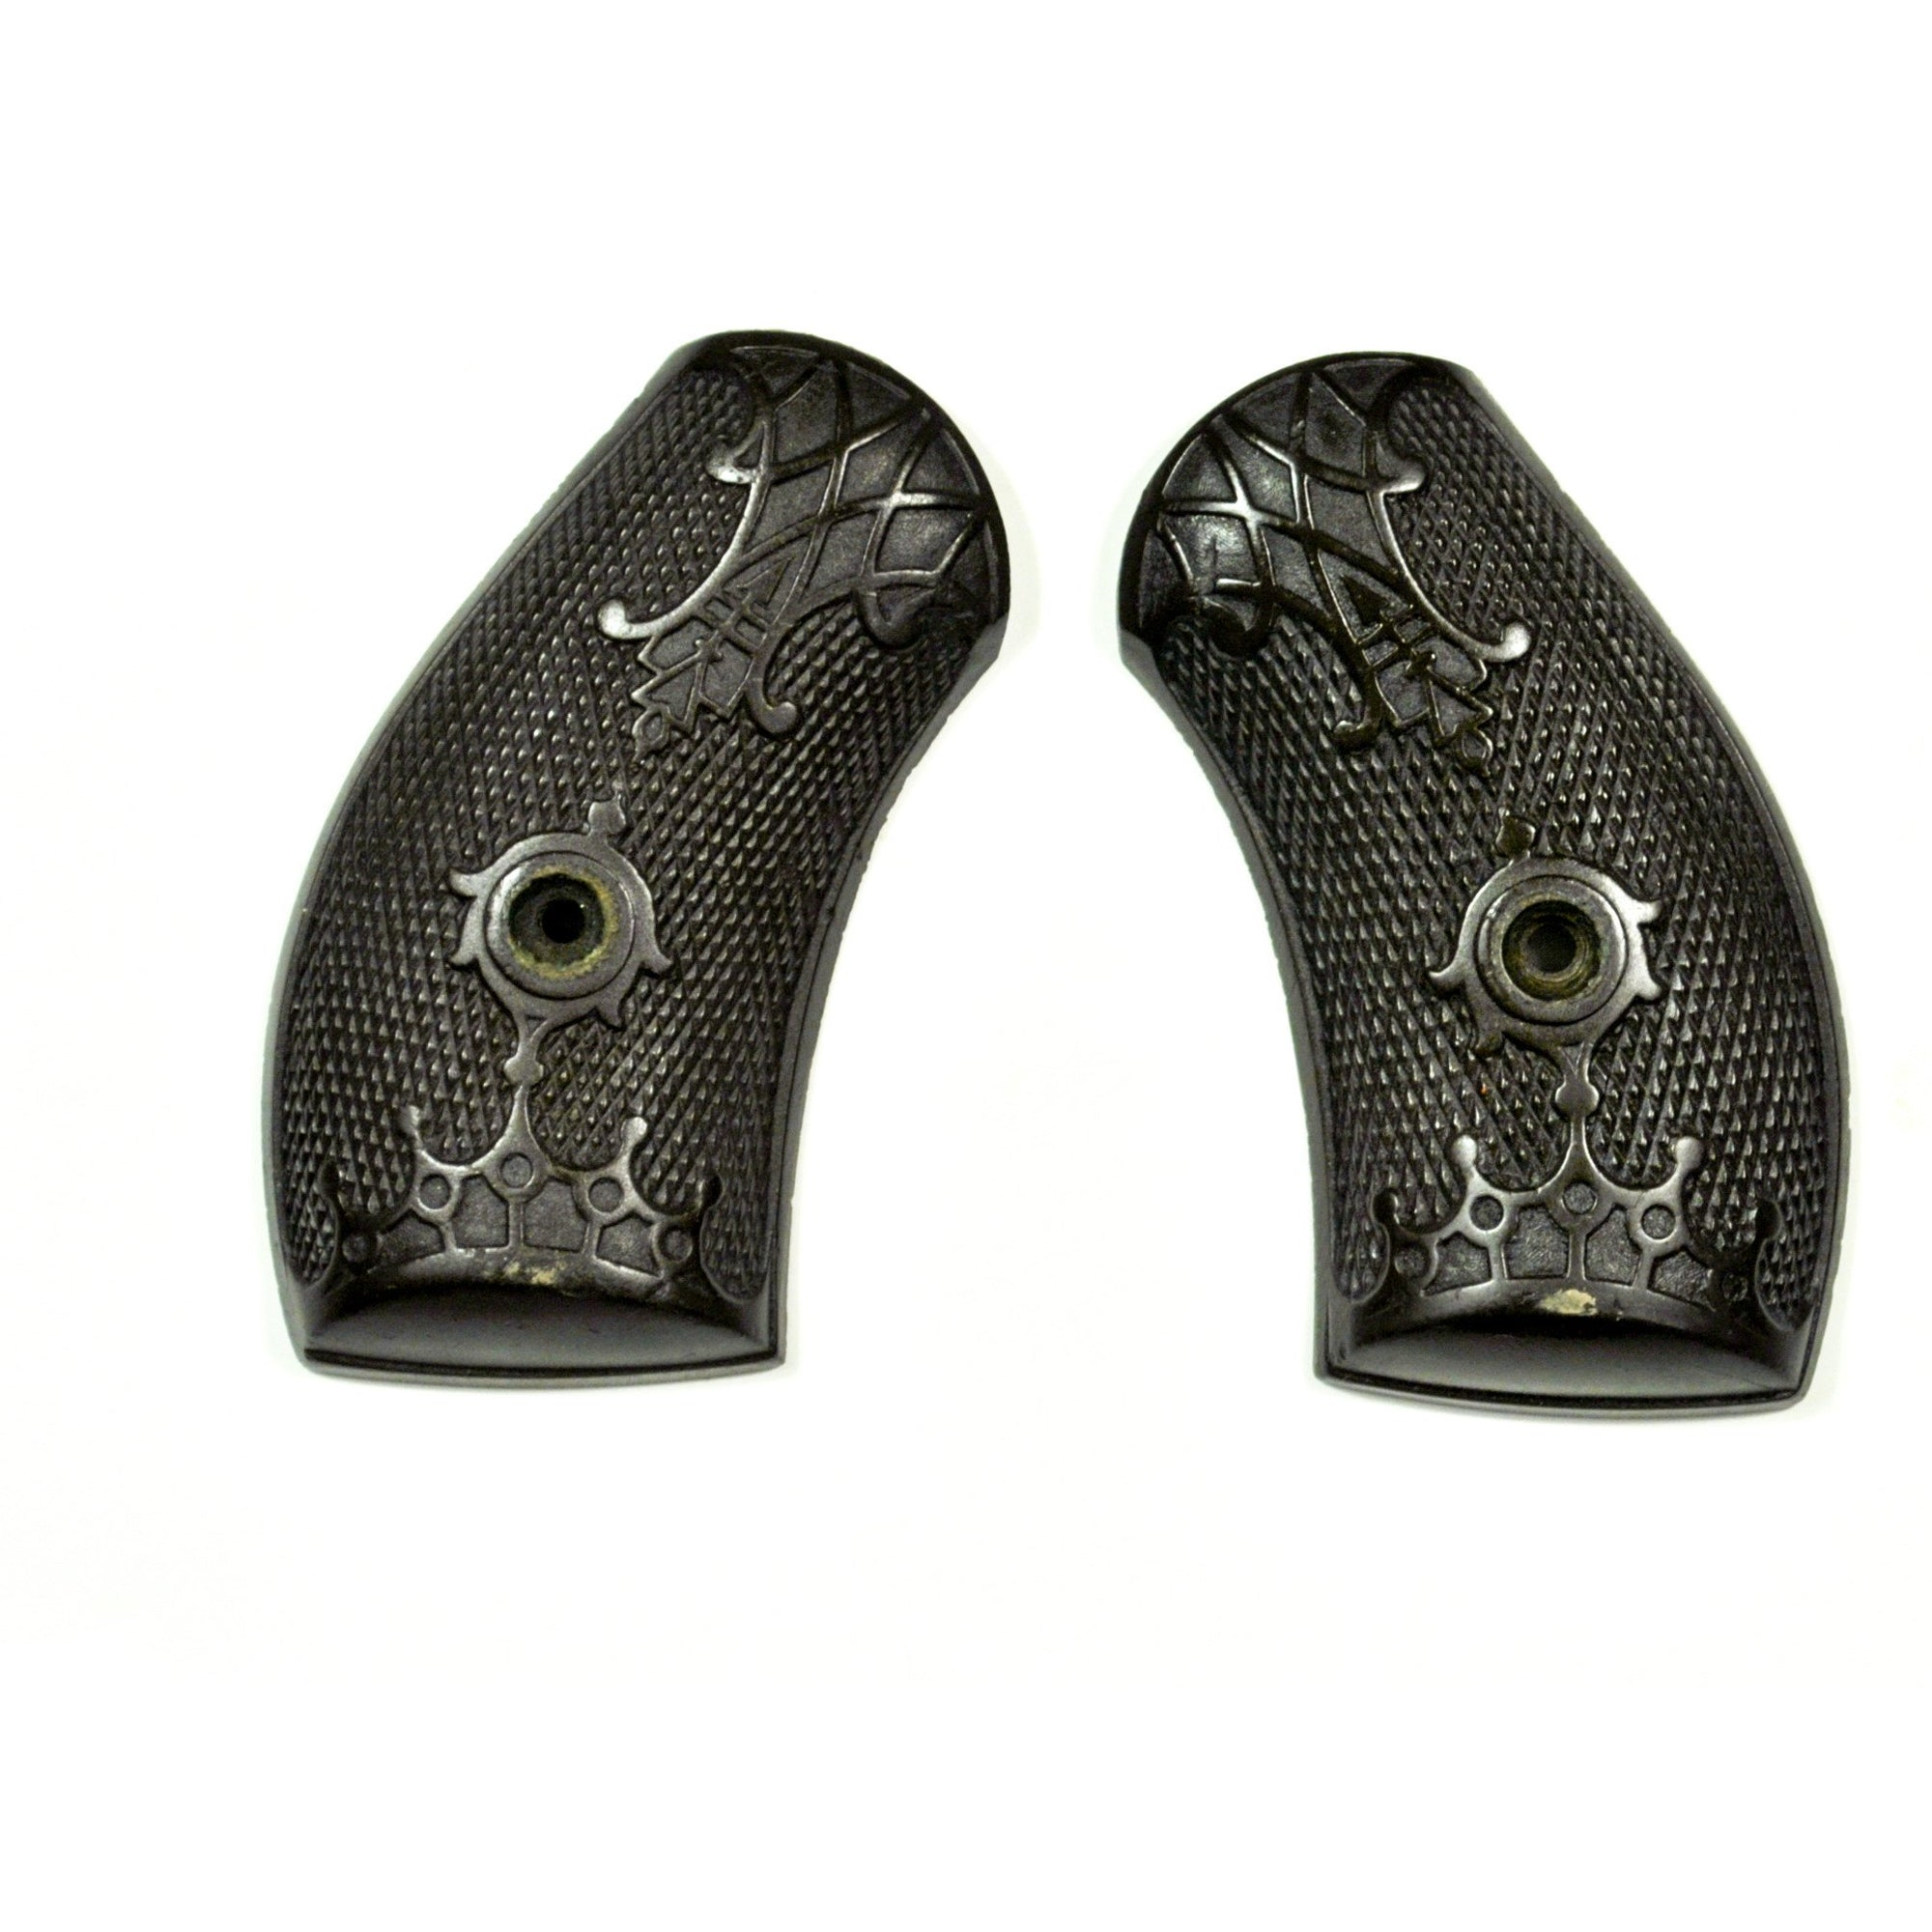 Harrington & Richardson Vest Pocket Safety Hammer Revolver Grips,Gunsmith's Parts- Canada Brass